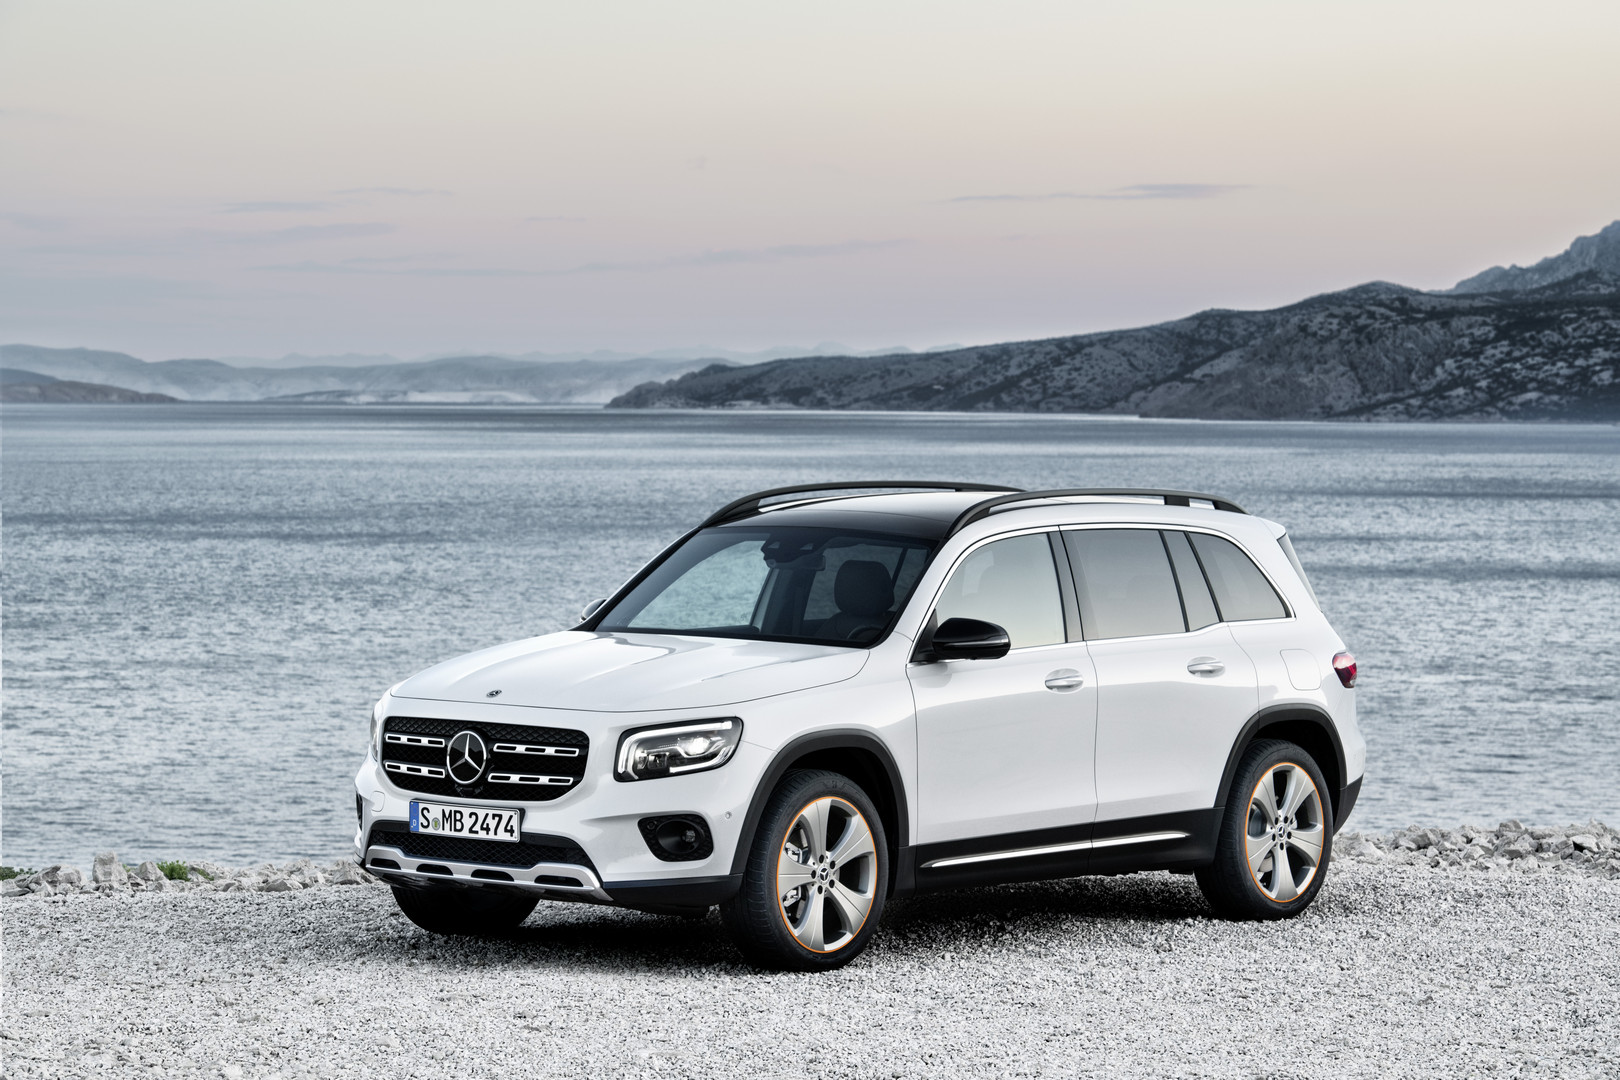 Digital White 2020 Mercedes-Benz GLB SUV